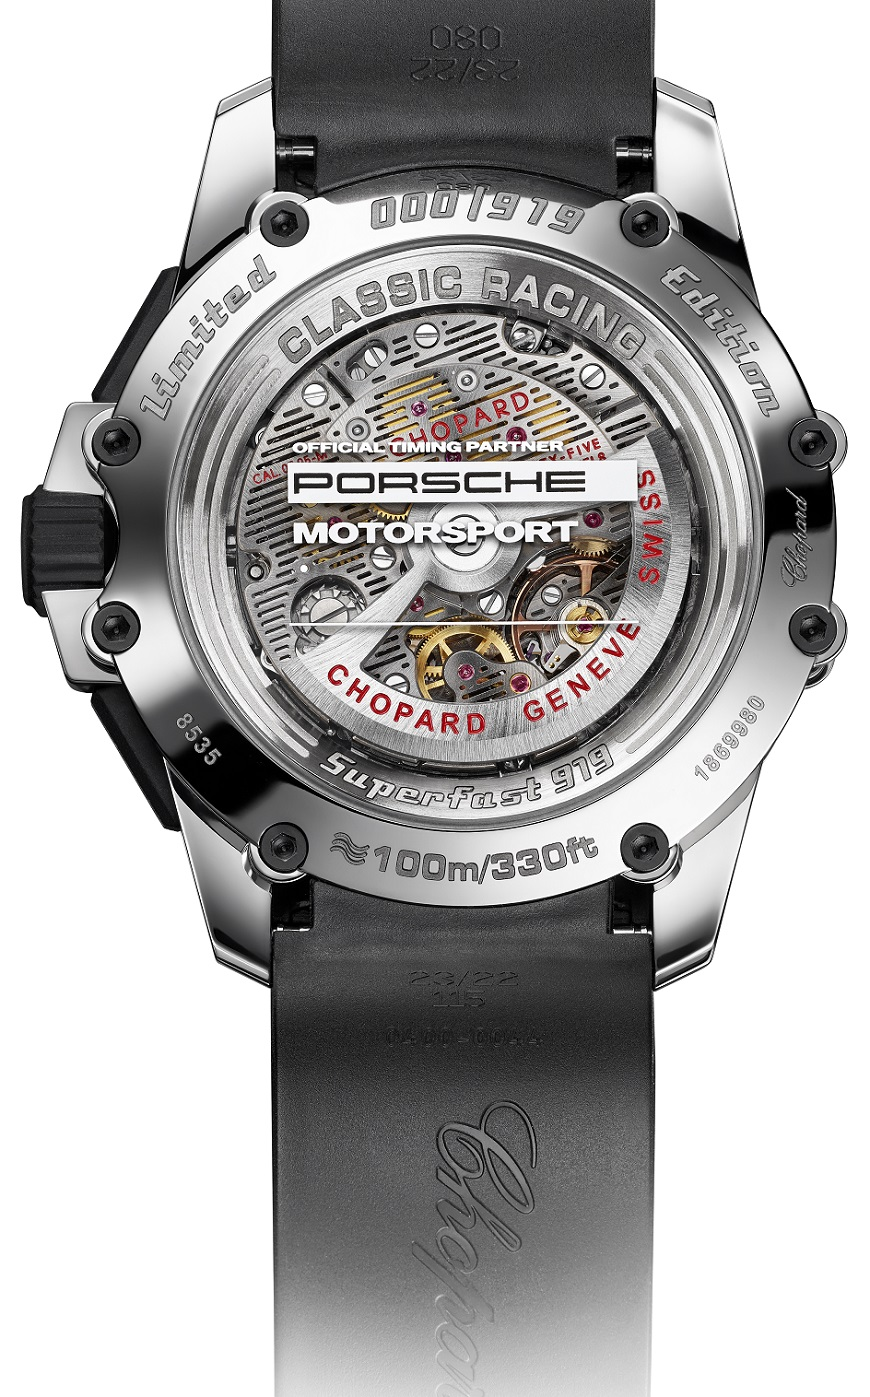 Superfast Chrono Porsche 919 Edition - Back - White Background